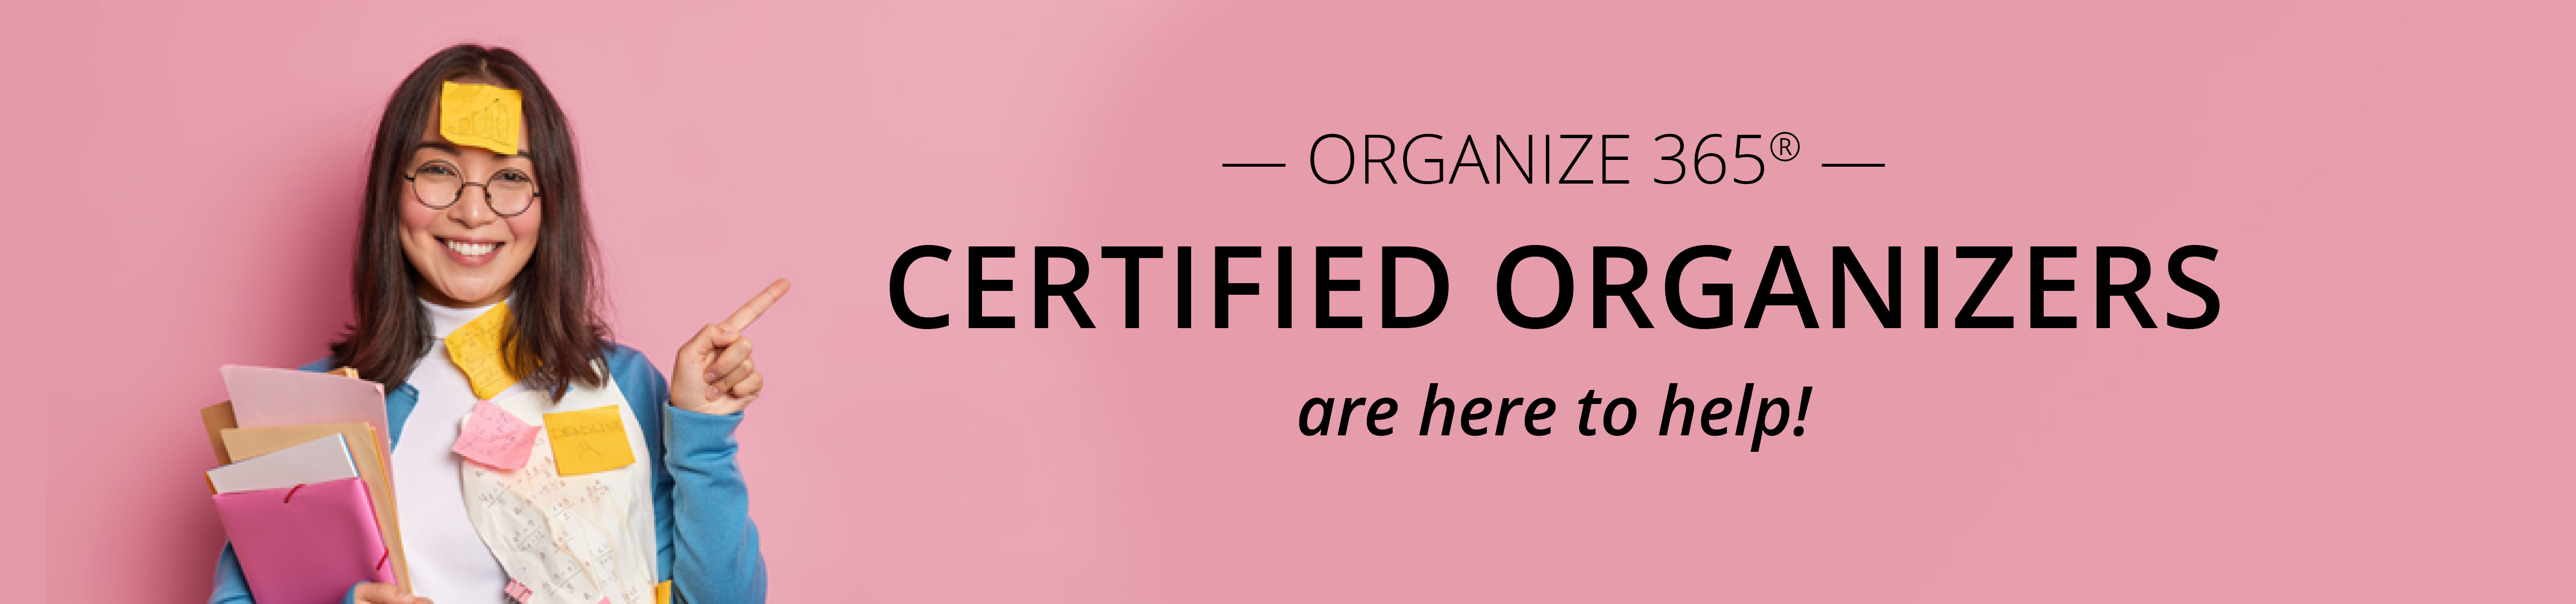 Our certified organizers are here to help!